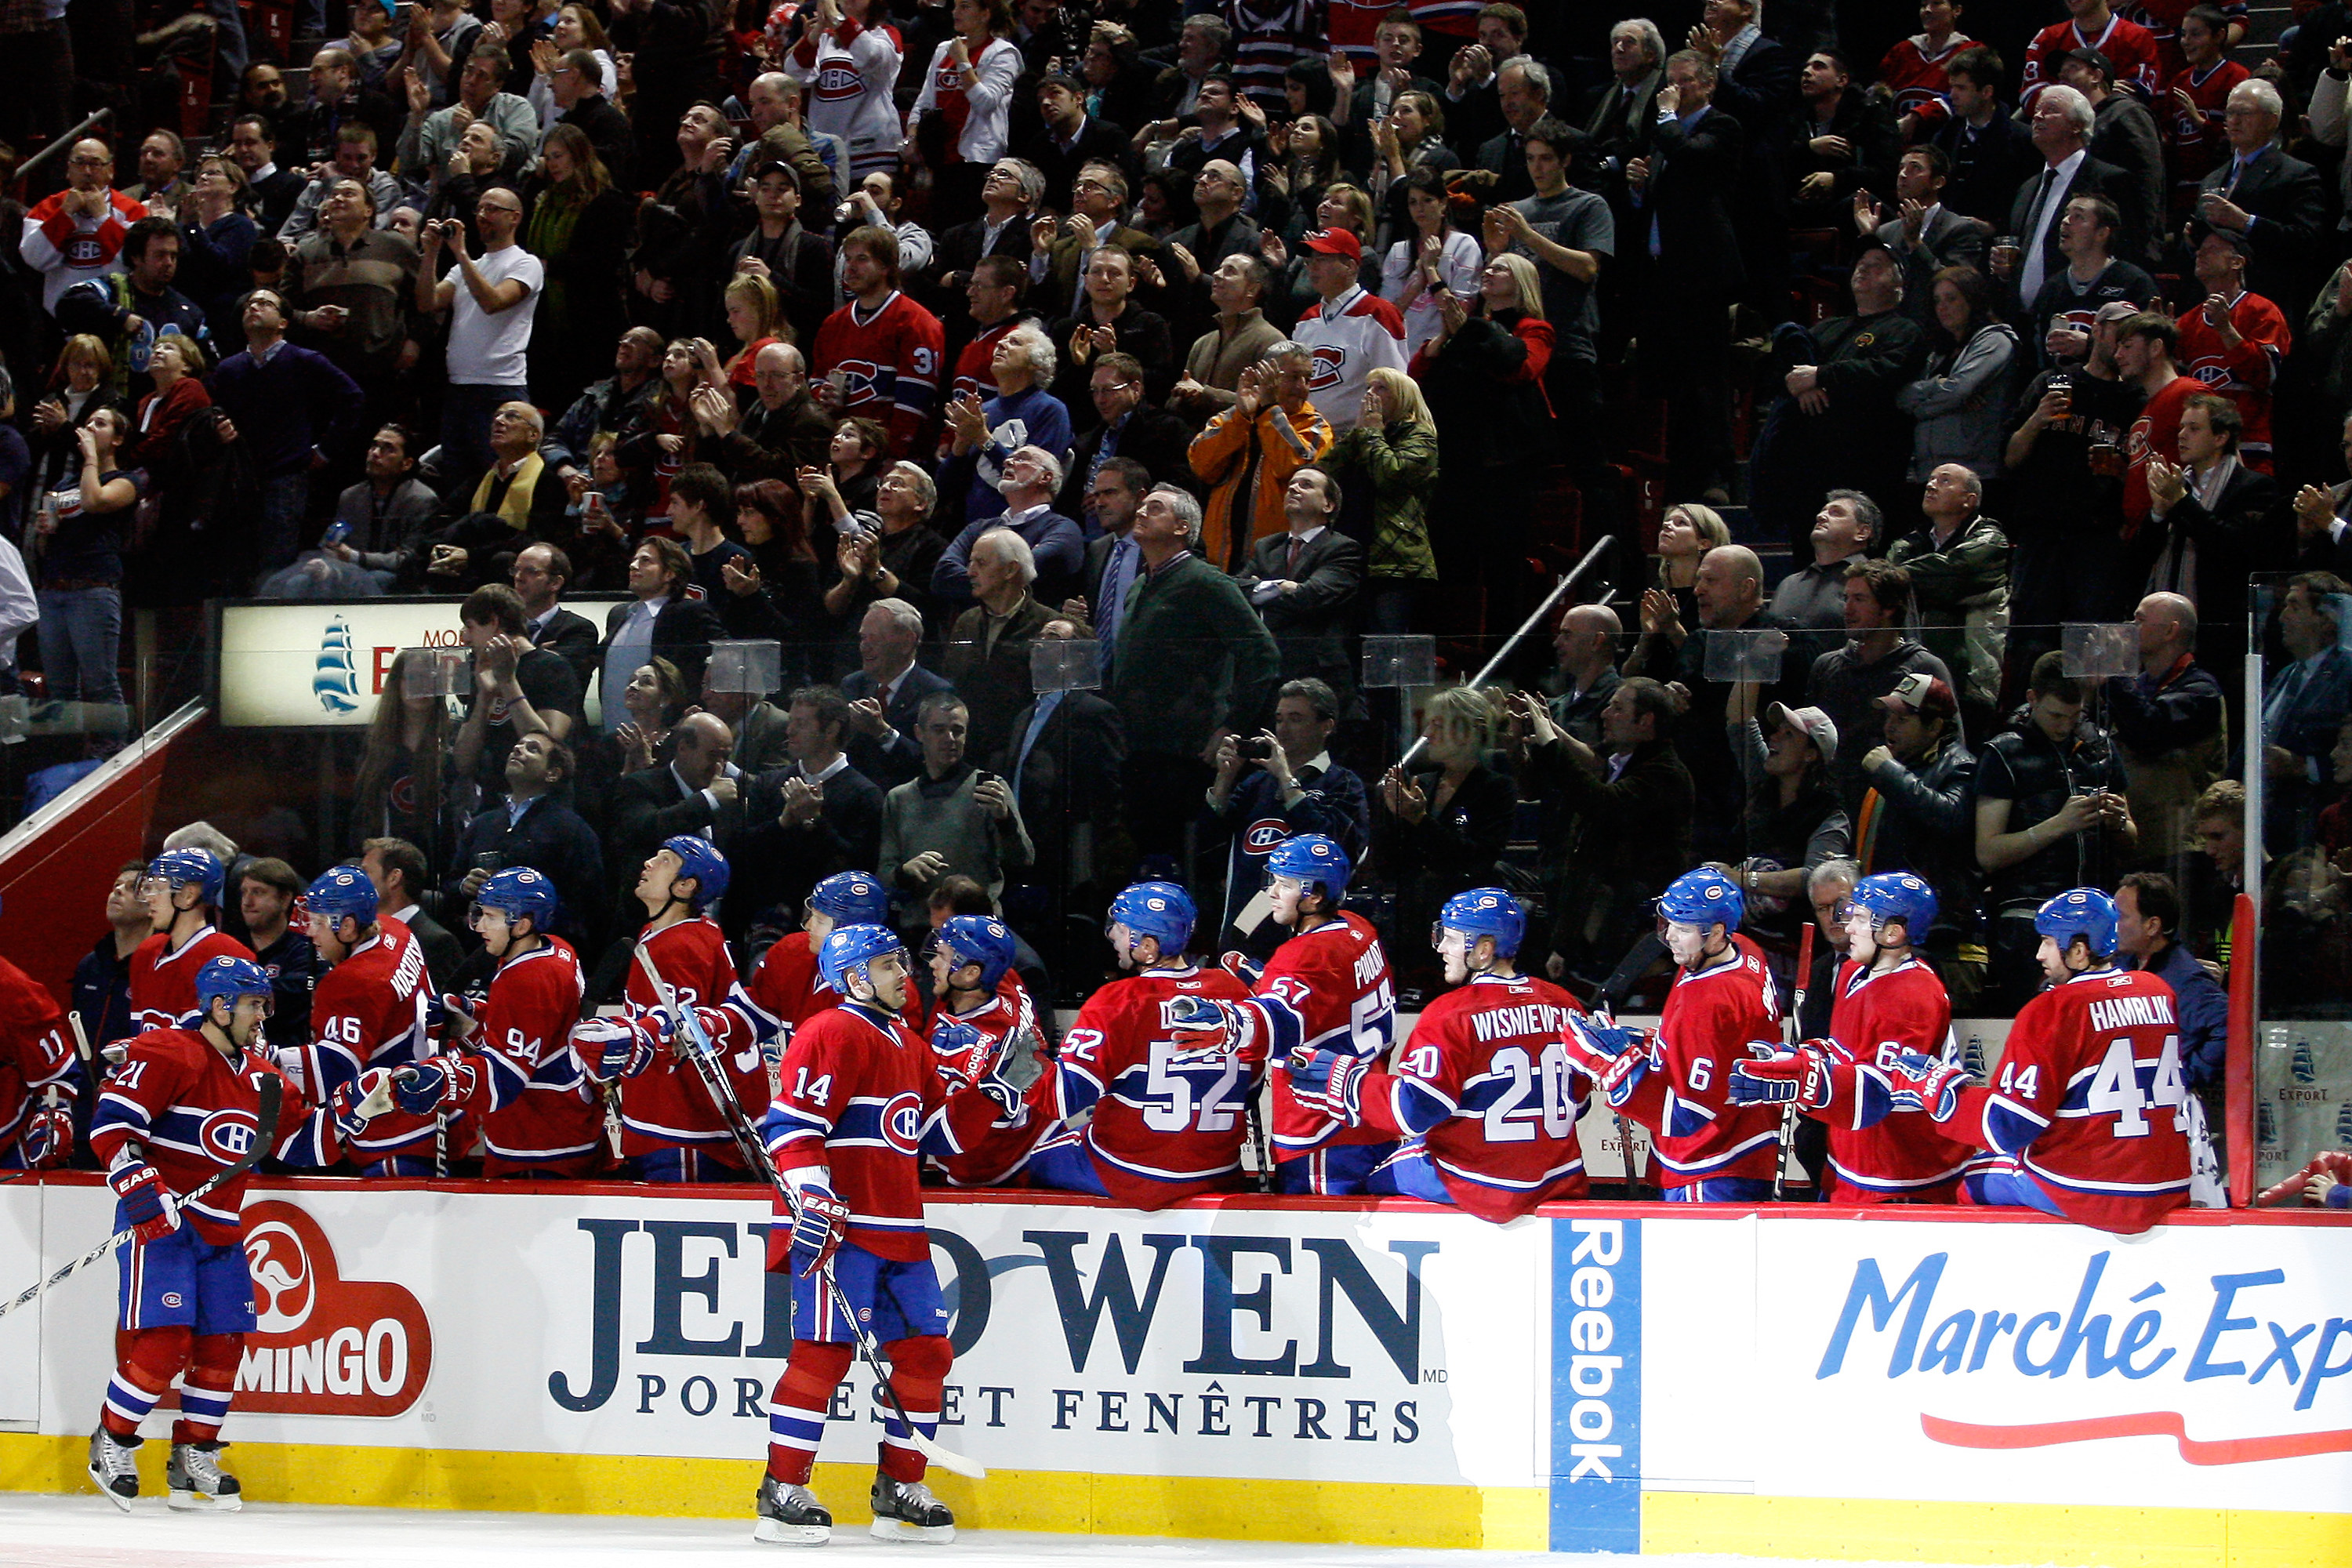 MONTREAL, CANADA - FEBRUARY 2:  Tomas Plekanec #14 of the Montreal Canadiens celebrates his third-period goal with teammates during the NHL game against the Florida Panthers at the Bell Centre on February 2, 2011 in Montreal, Quebec, Canada.  The Canadien